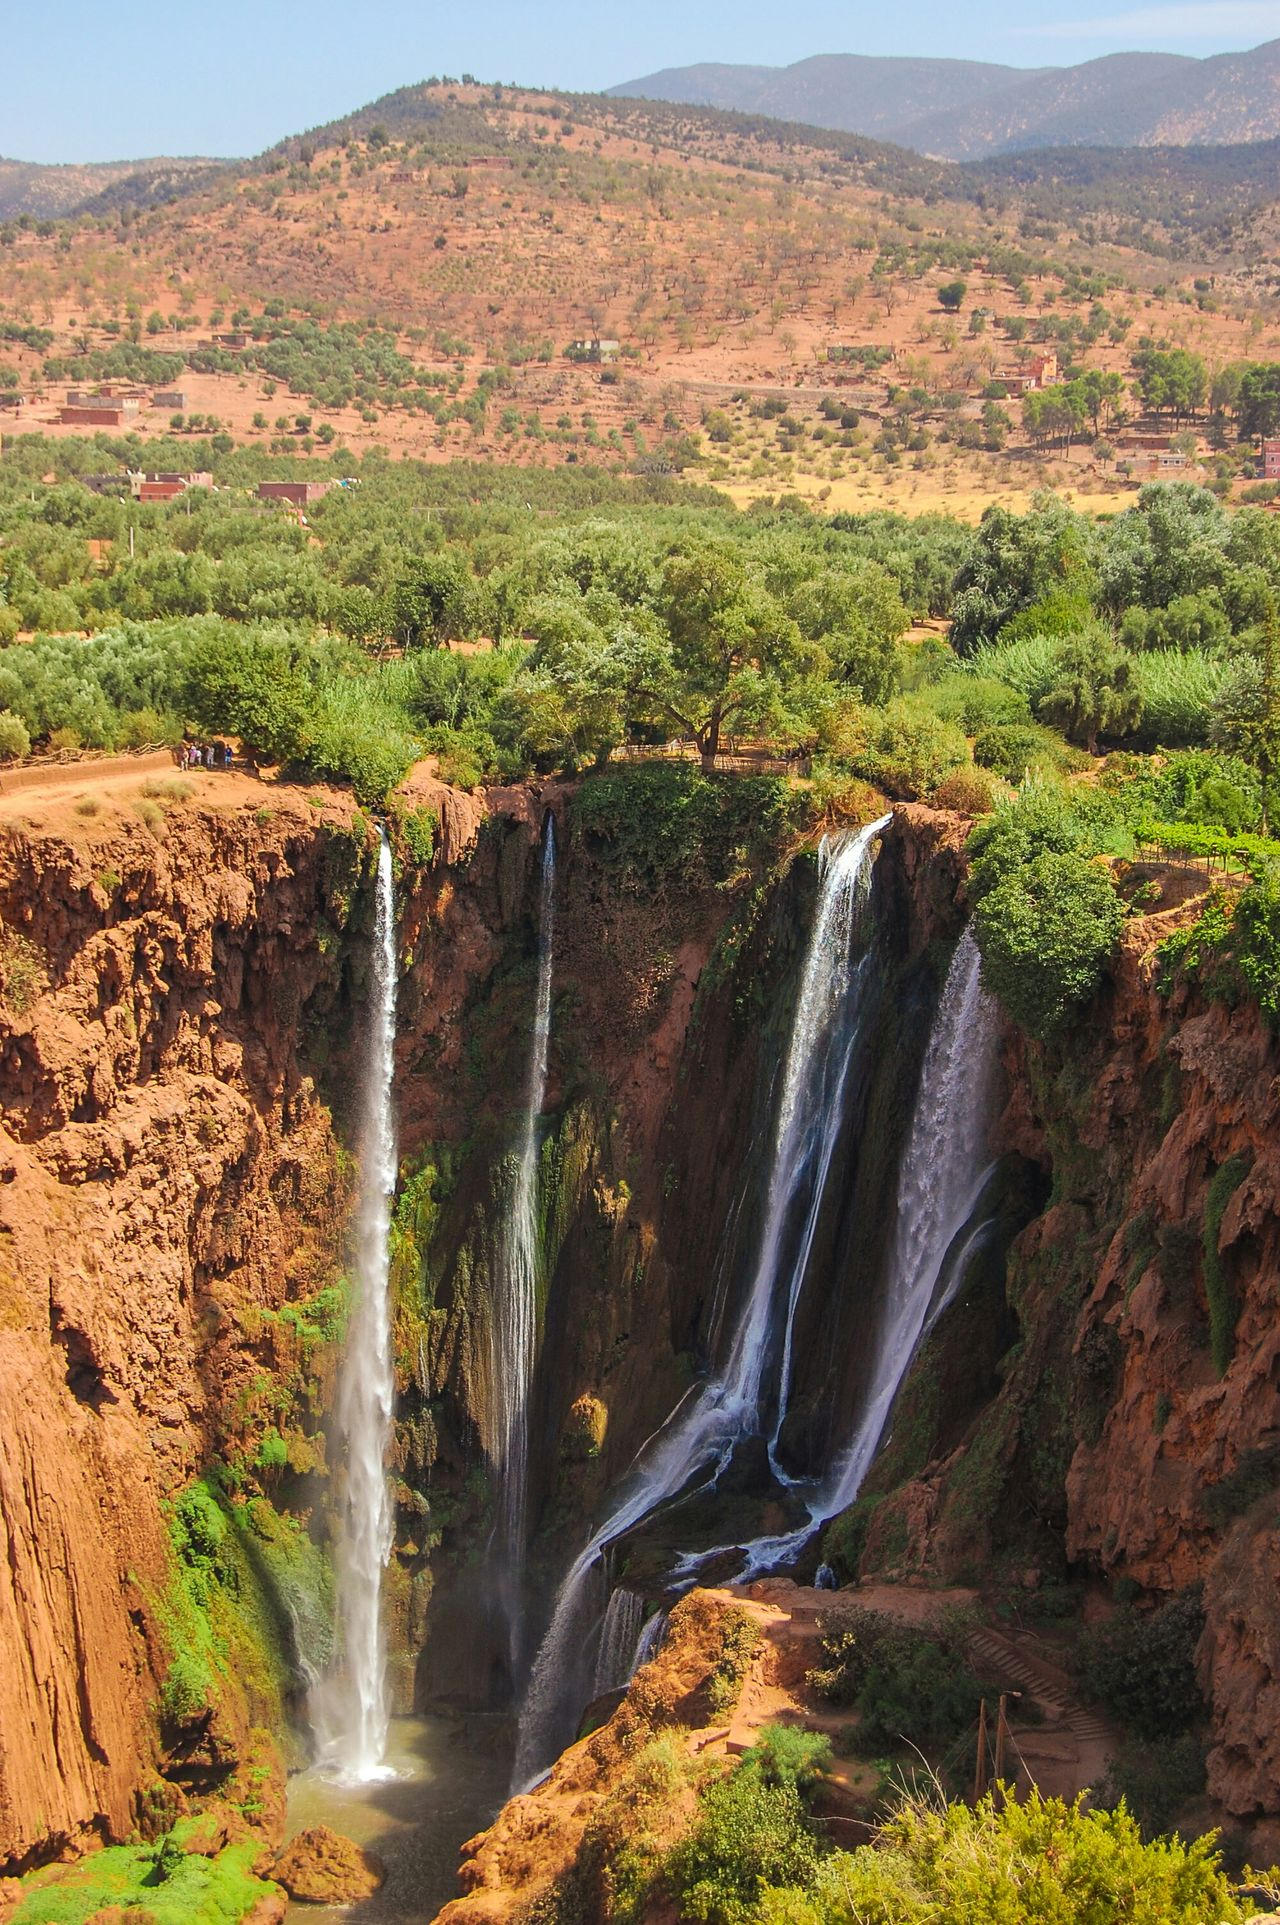 Ouzoud Falls from above Adventure Trek Adventure MoroccoTrip Morocco Ouzoud Cascade Ouzoud Canyon Nature Landscape Travel The KIOMI Collection